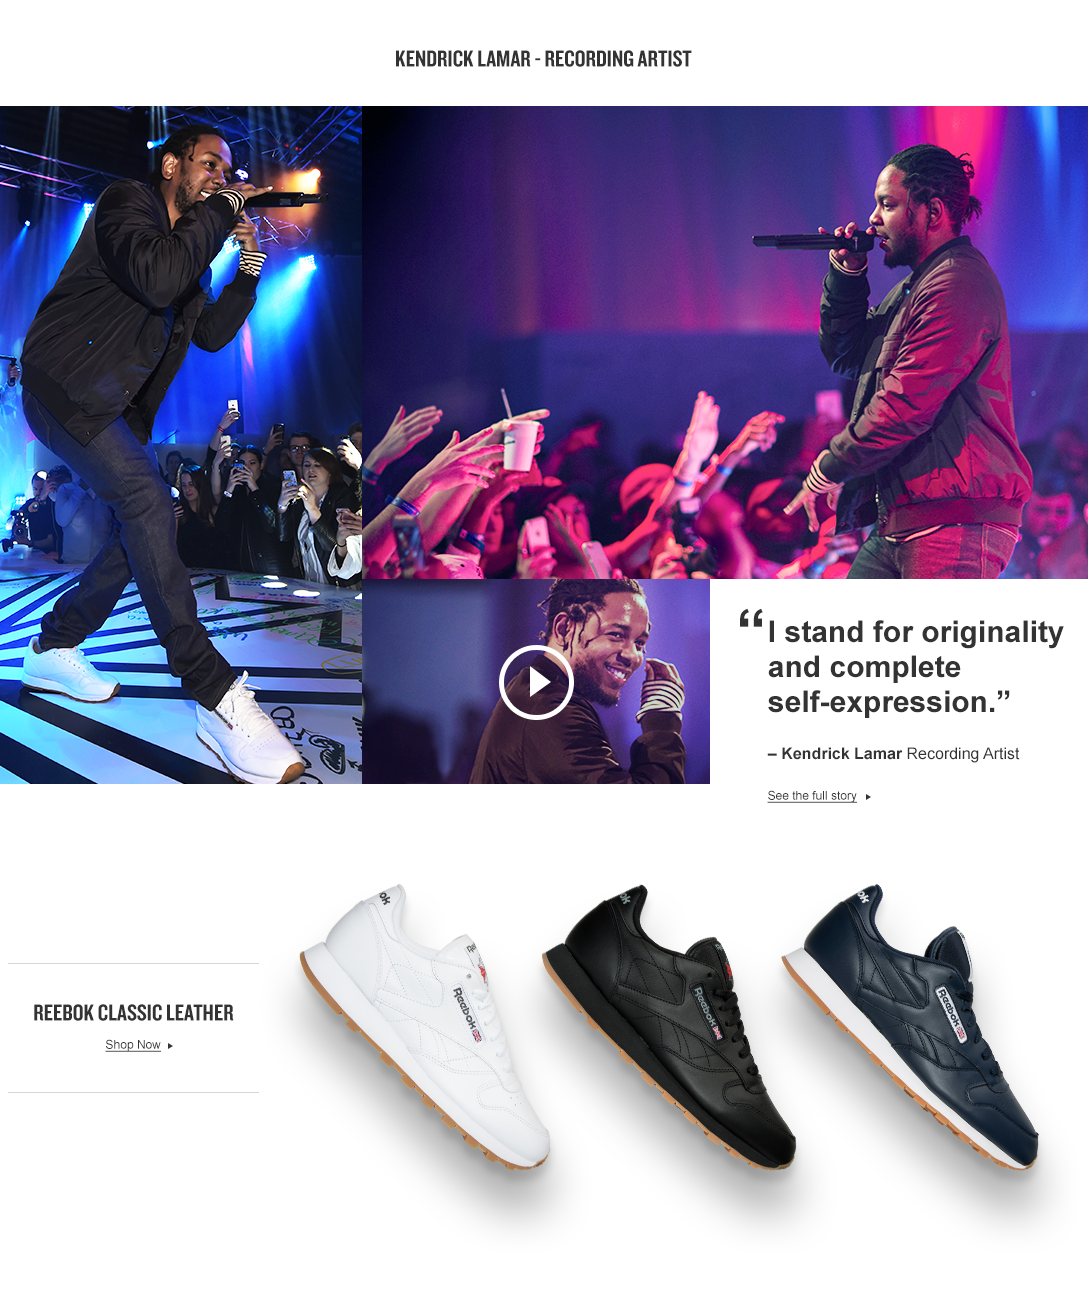 Entertainer Kendrick Lamar said I stand for originality and complete self-expression. He rocks Reebok Classic Leather X #EpicFinish.